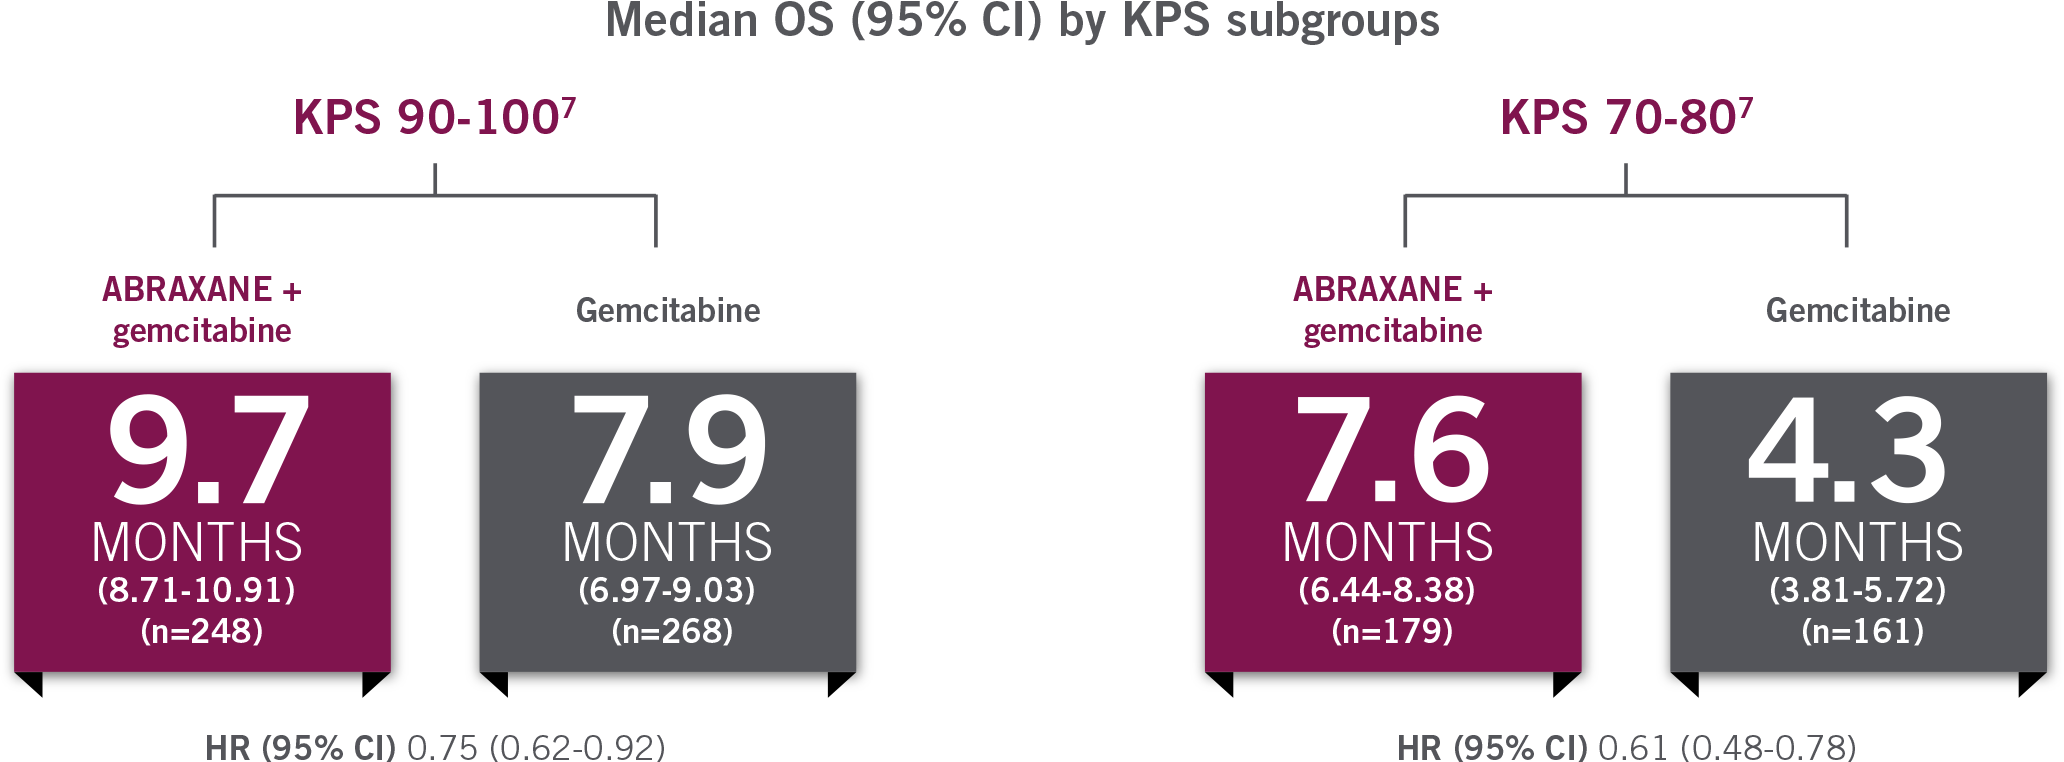 Median OS for KPS 70-80. ABRAXANE + gemcitabine vs gemcitabine